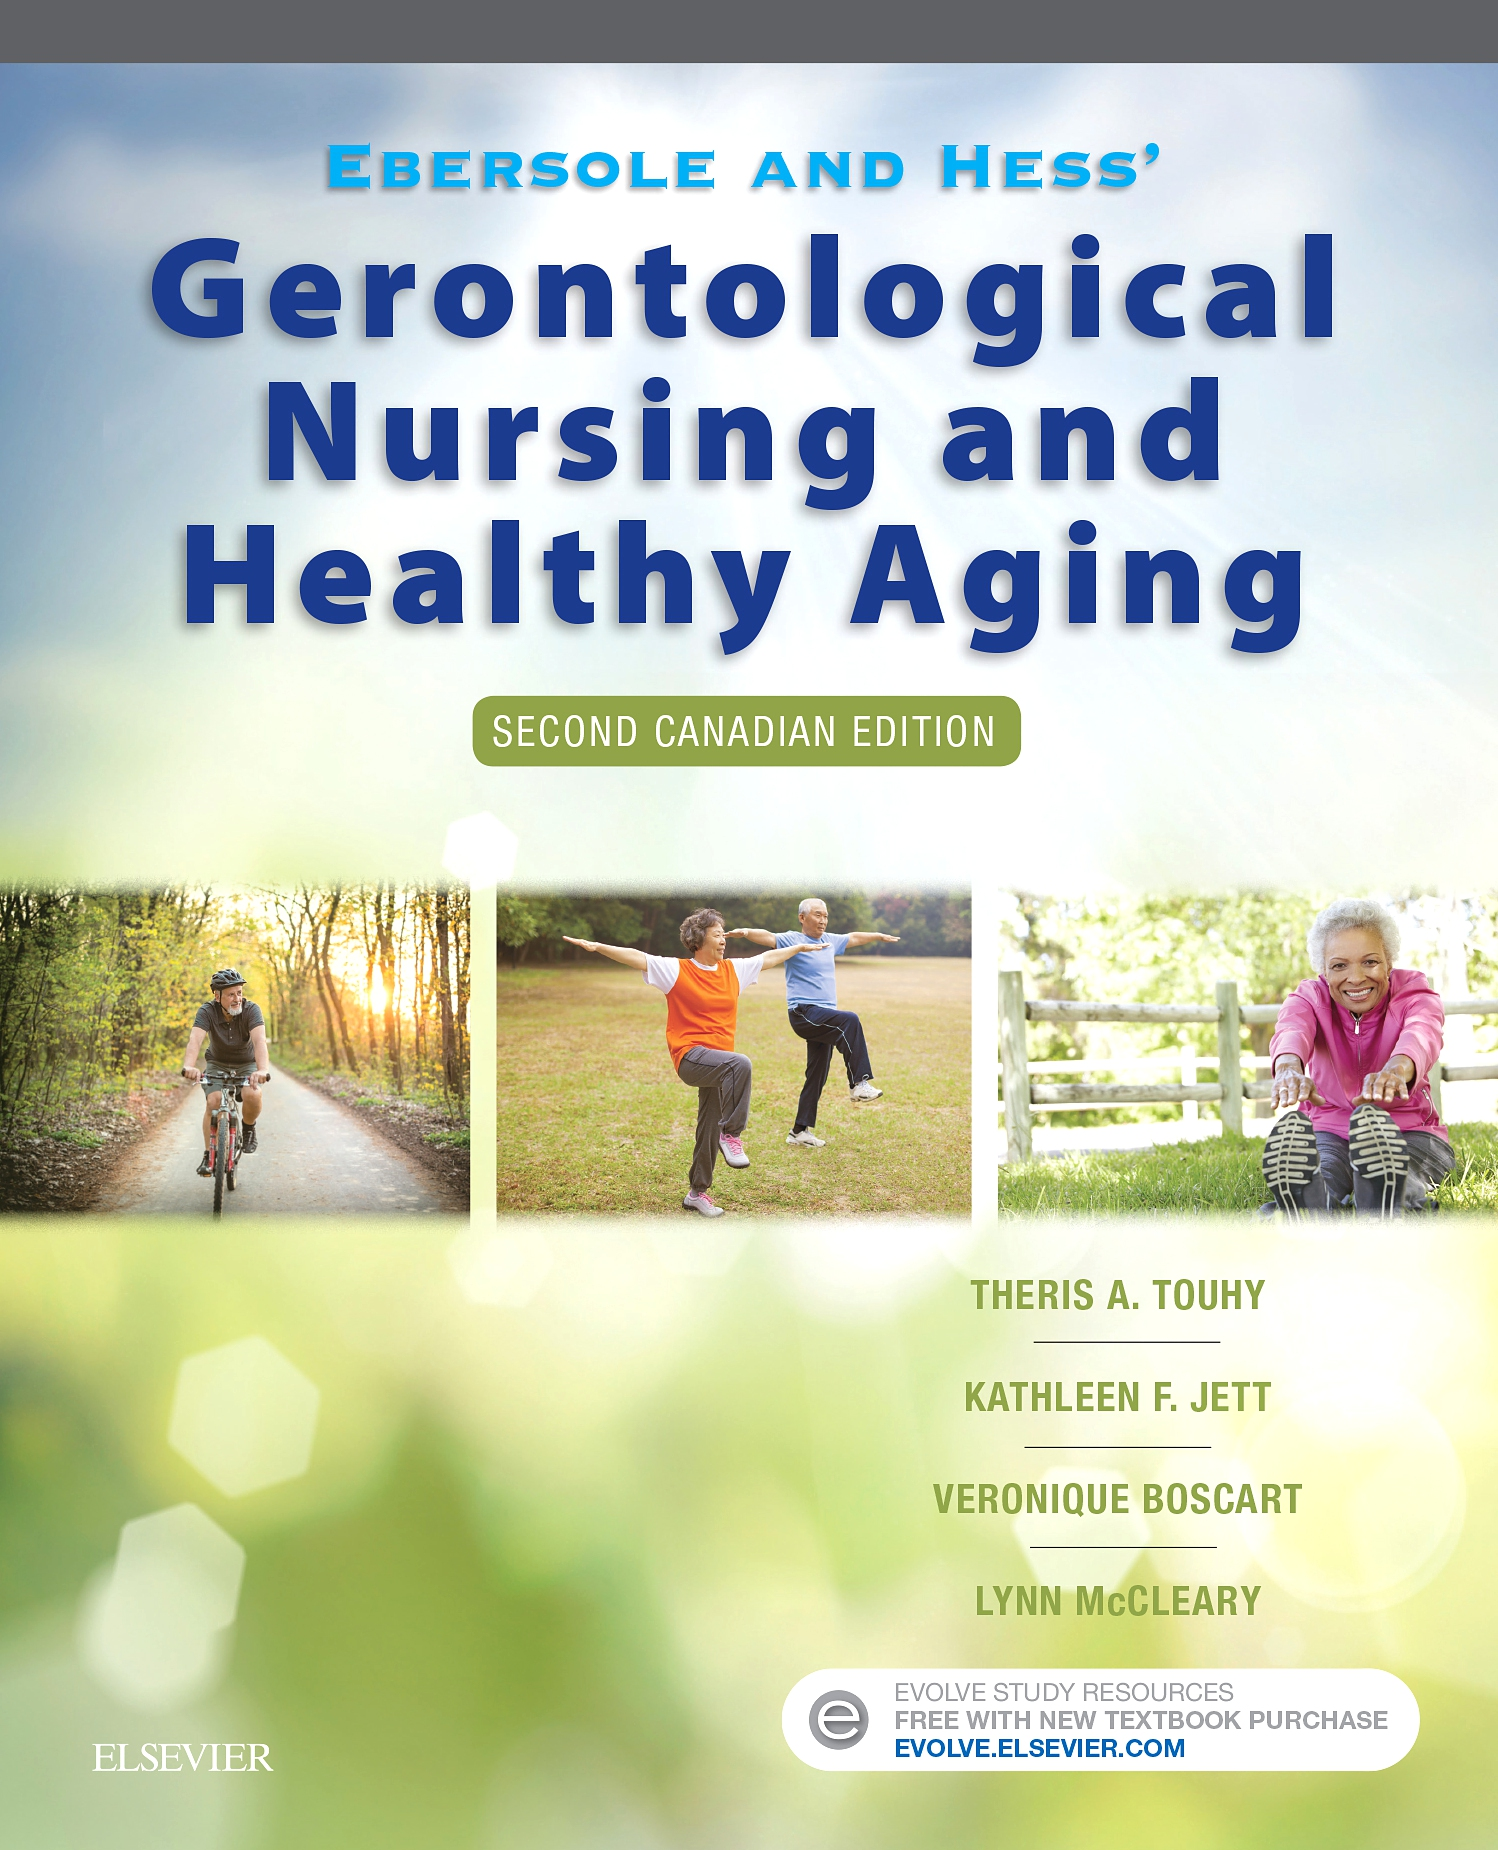 Evolve Resources for Ebersole and Hess' Gerontological Nursing and Healthy Aging, Canadian Edition, 2nd Edition